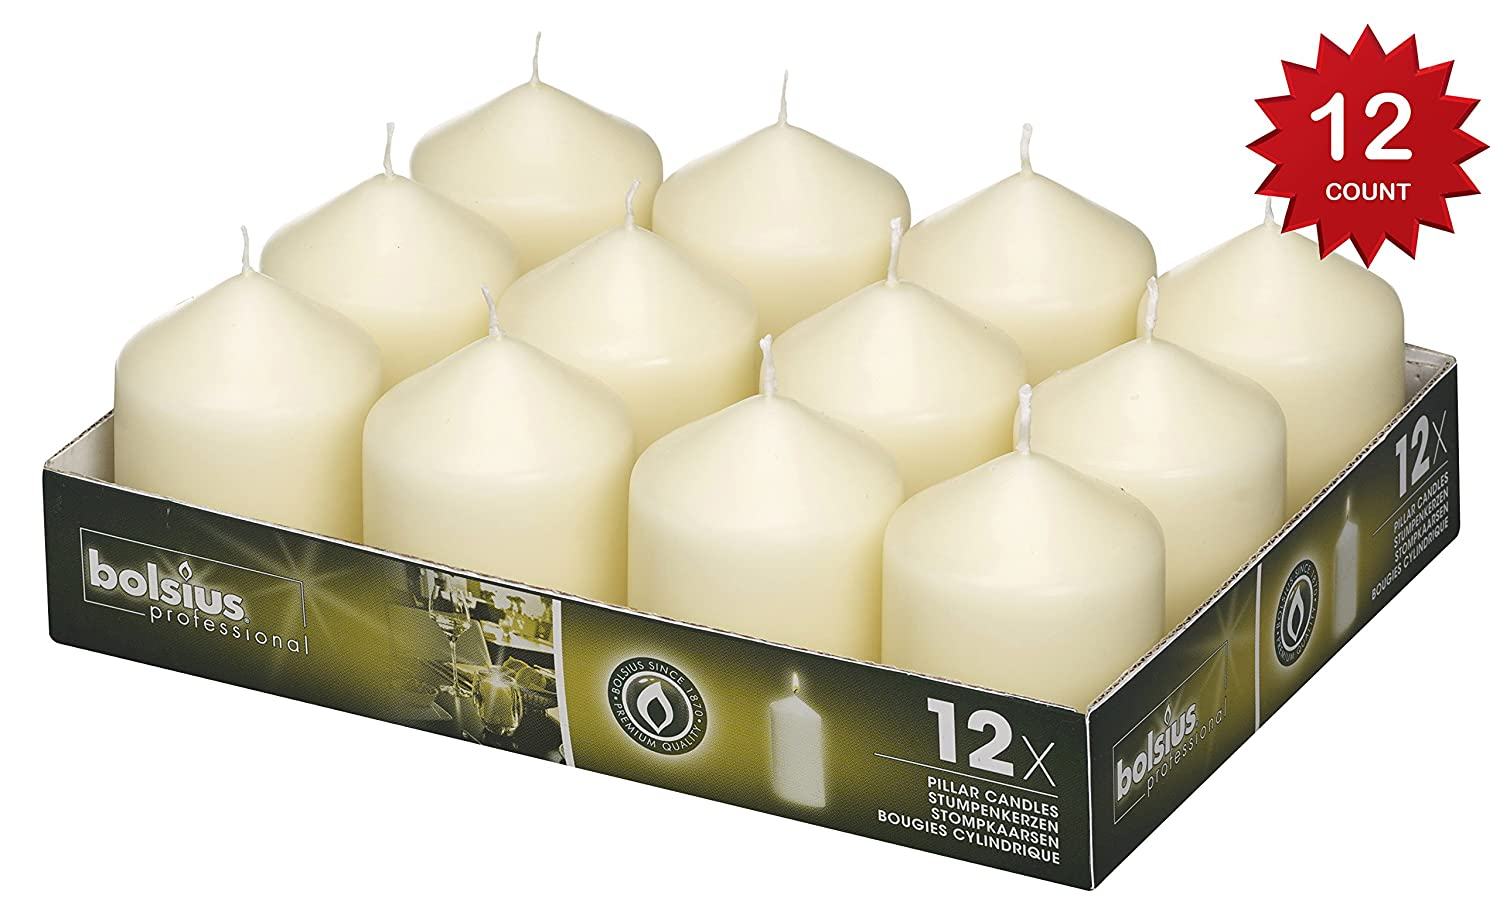 Bolsius Tray of 12 Ivory Pillar Candles 78 x 58 mm (aprox 3 x 2.3 inch)